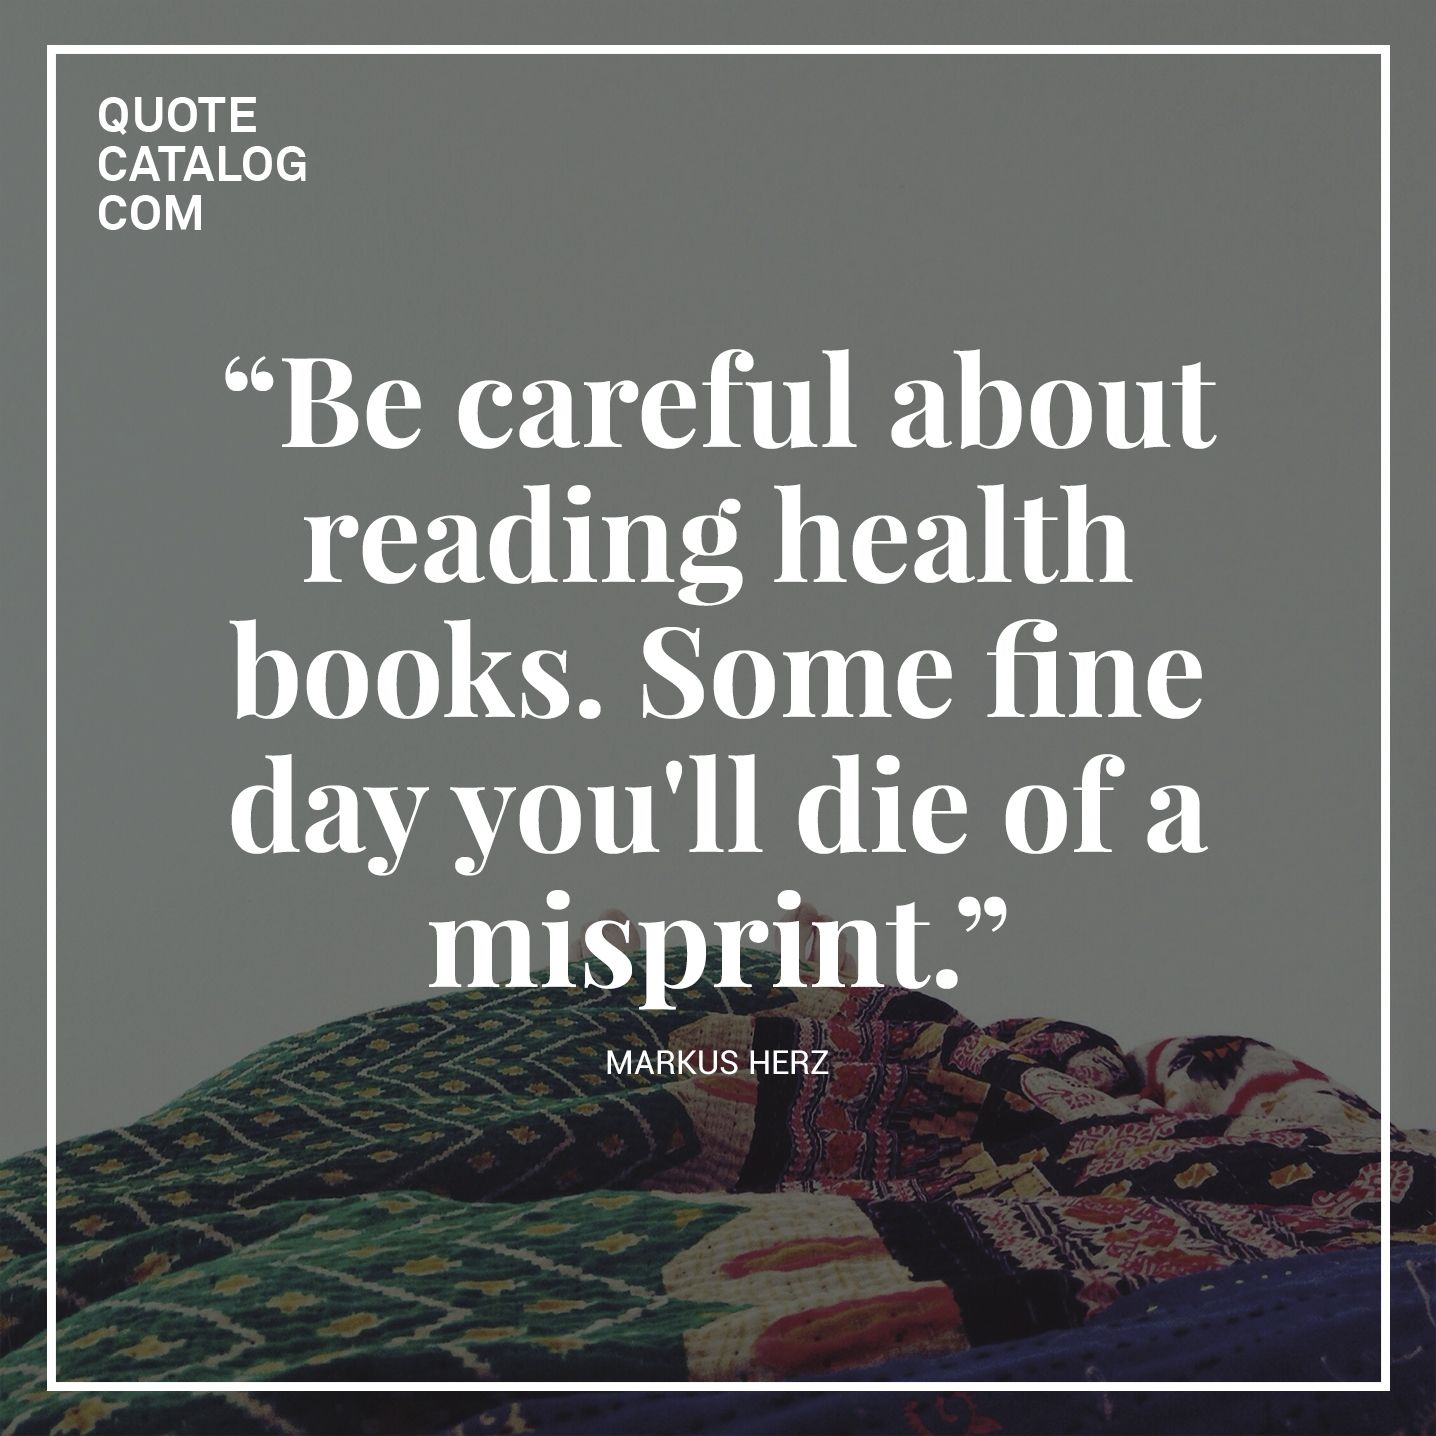 Life Quotes Books Be Careful About Reading Health Bookssome Fine Day You'll Die Of